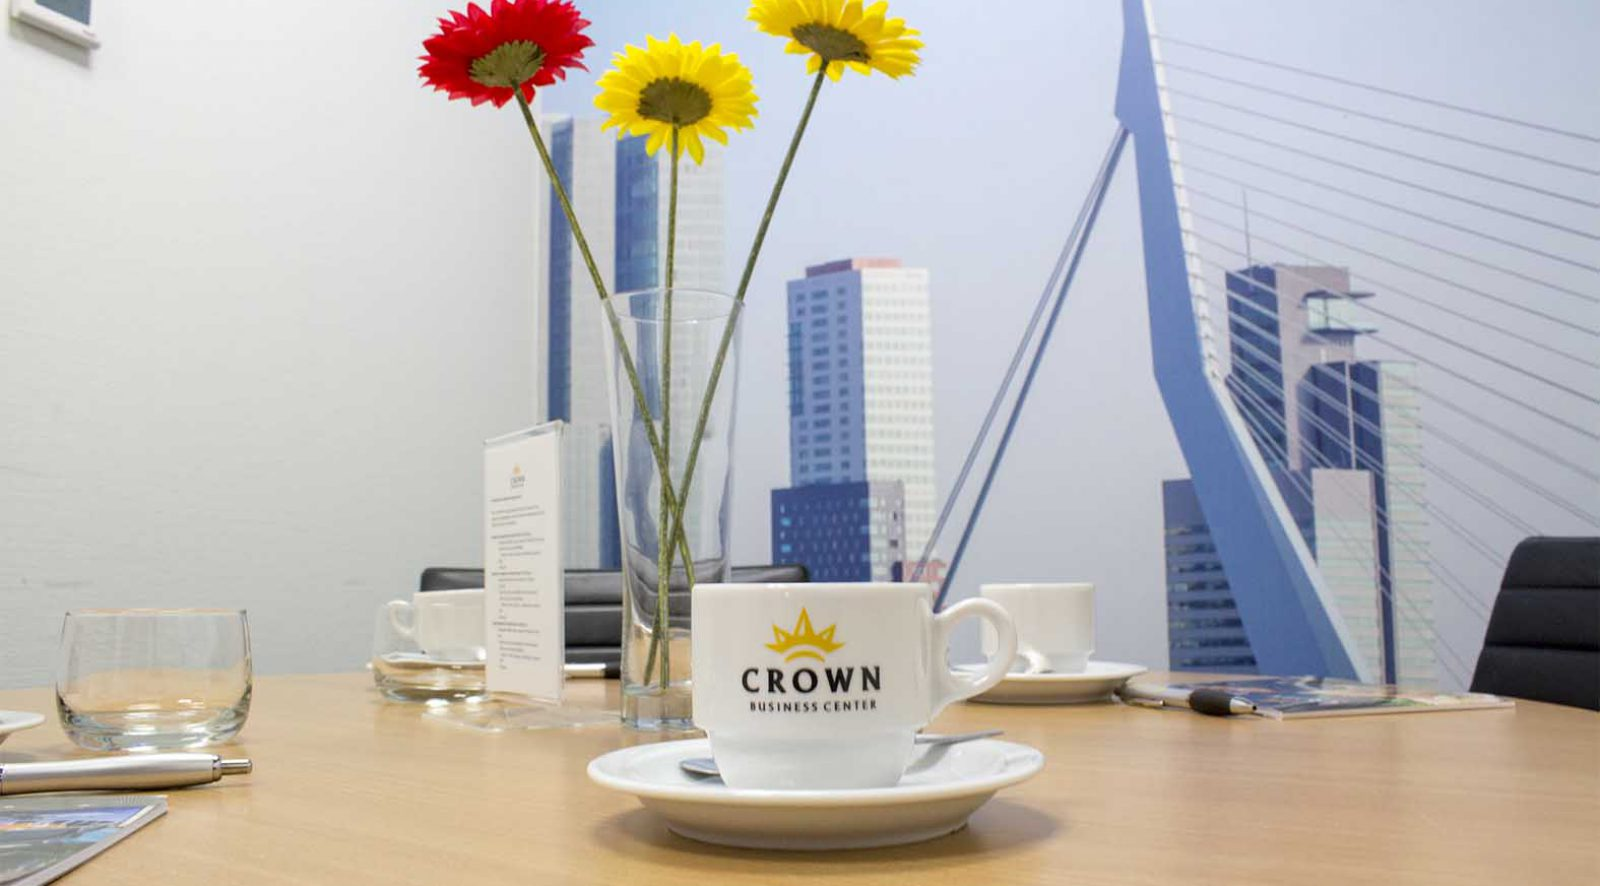 Vergaderruimte huren in Haarlem | Crown Business Center Haarlem